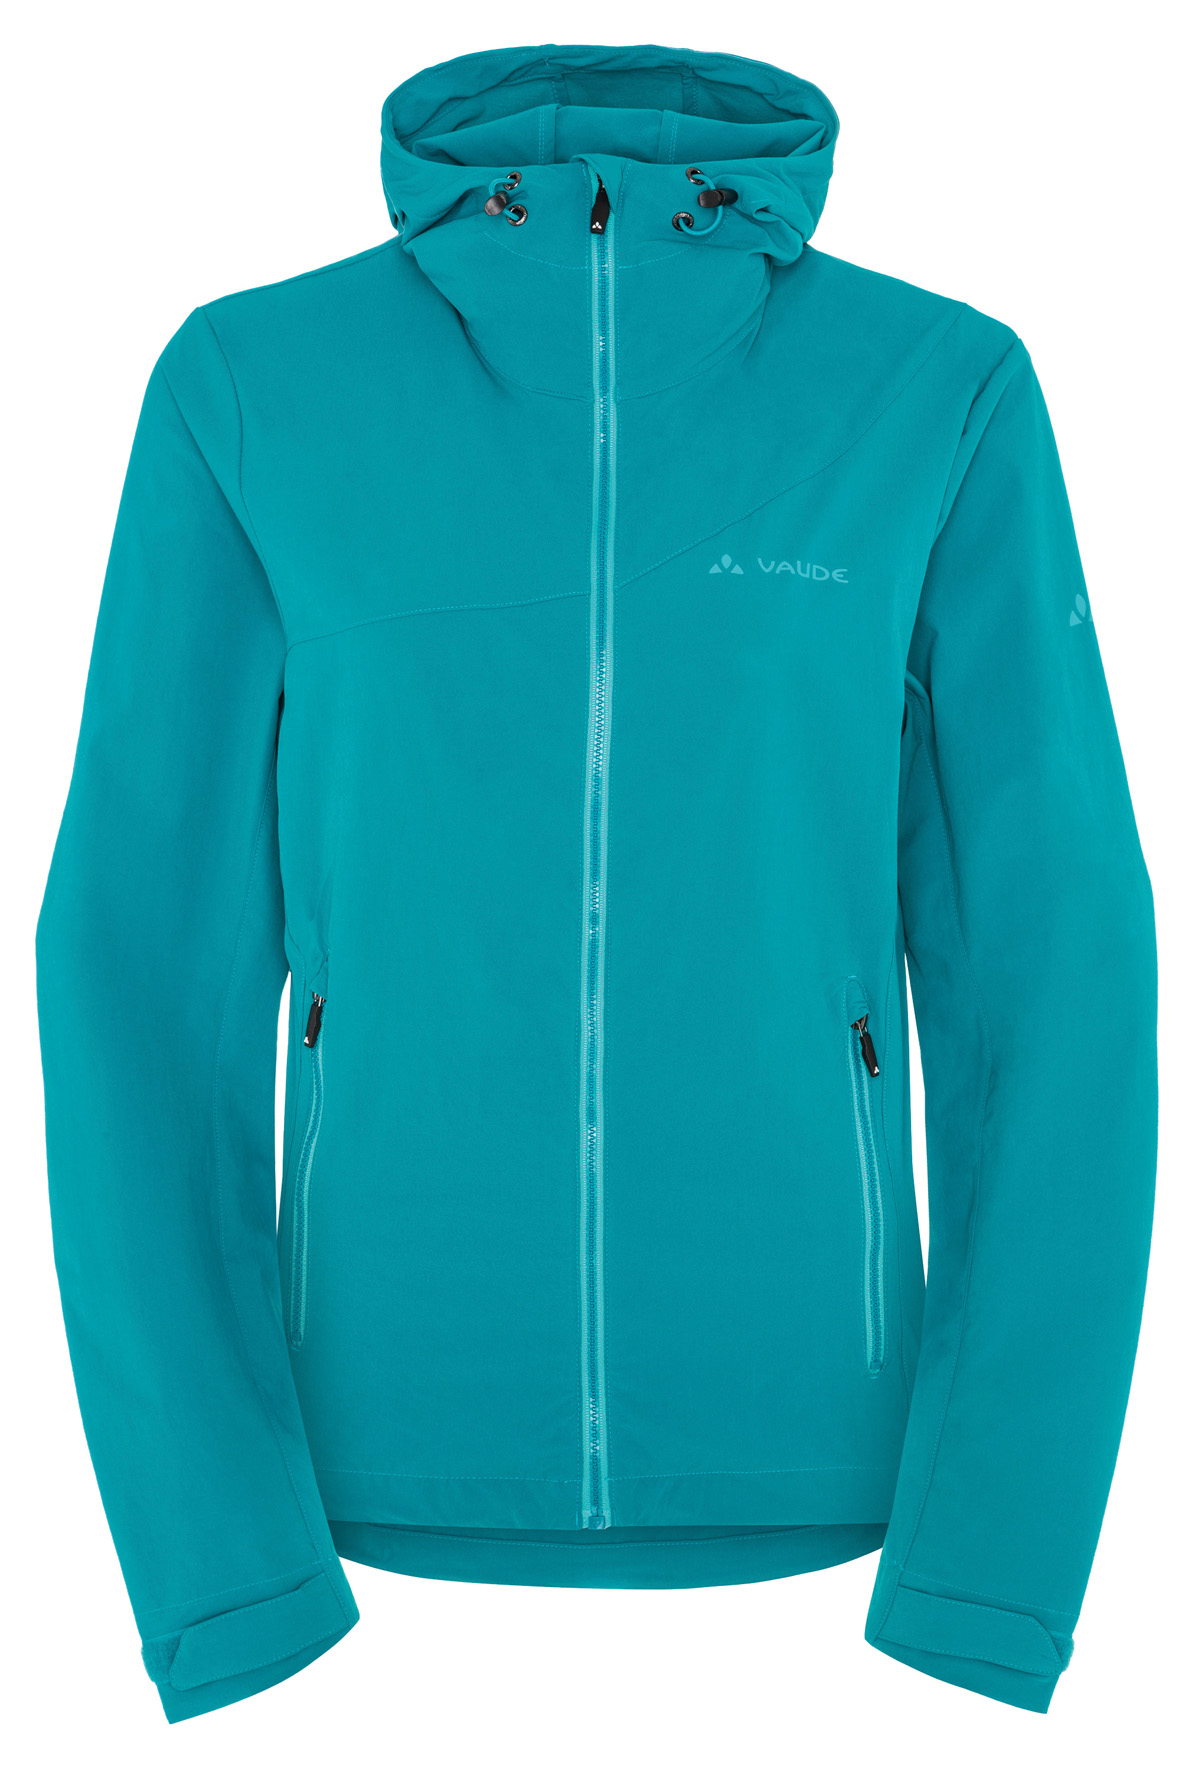 Women´s Moab Jacket alpine lake Größe 40 - Women´s Moab Jacket alpine lake Größe 40